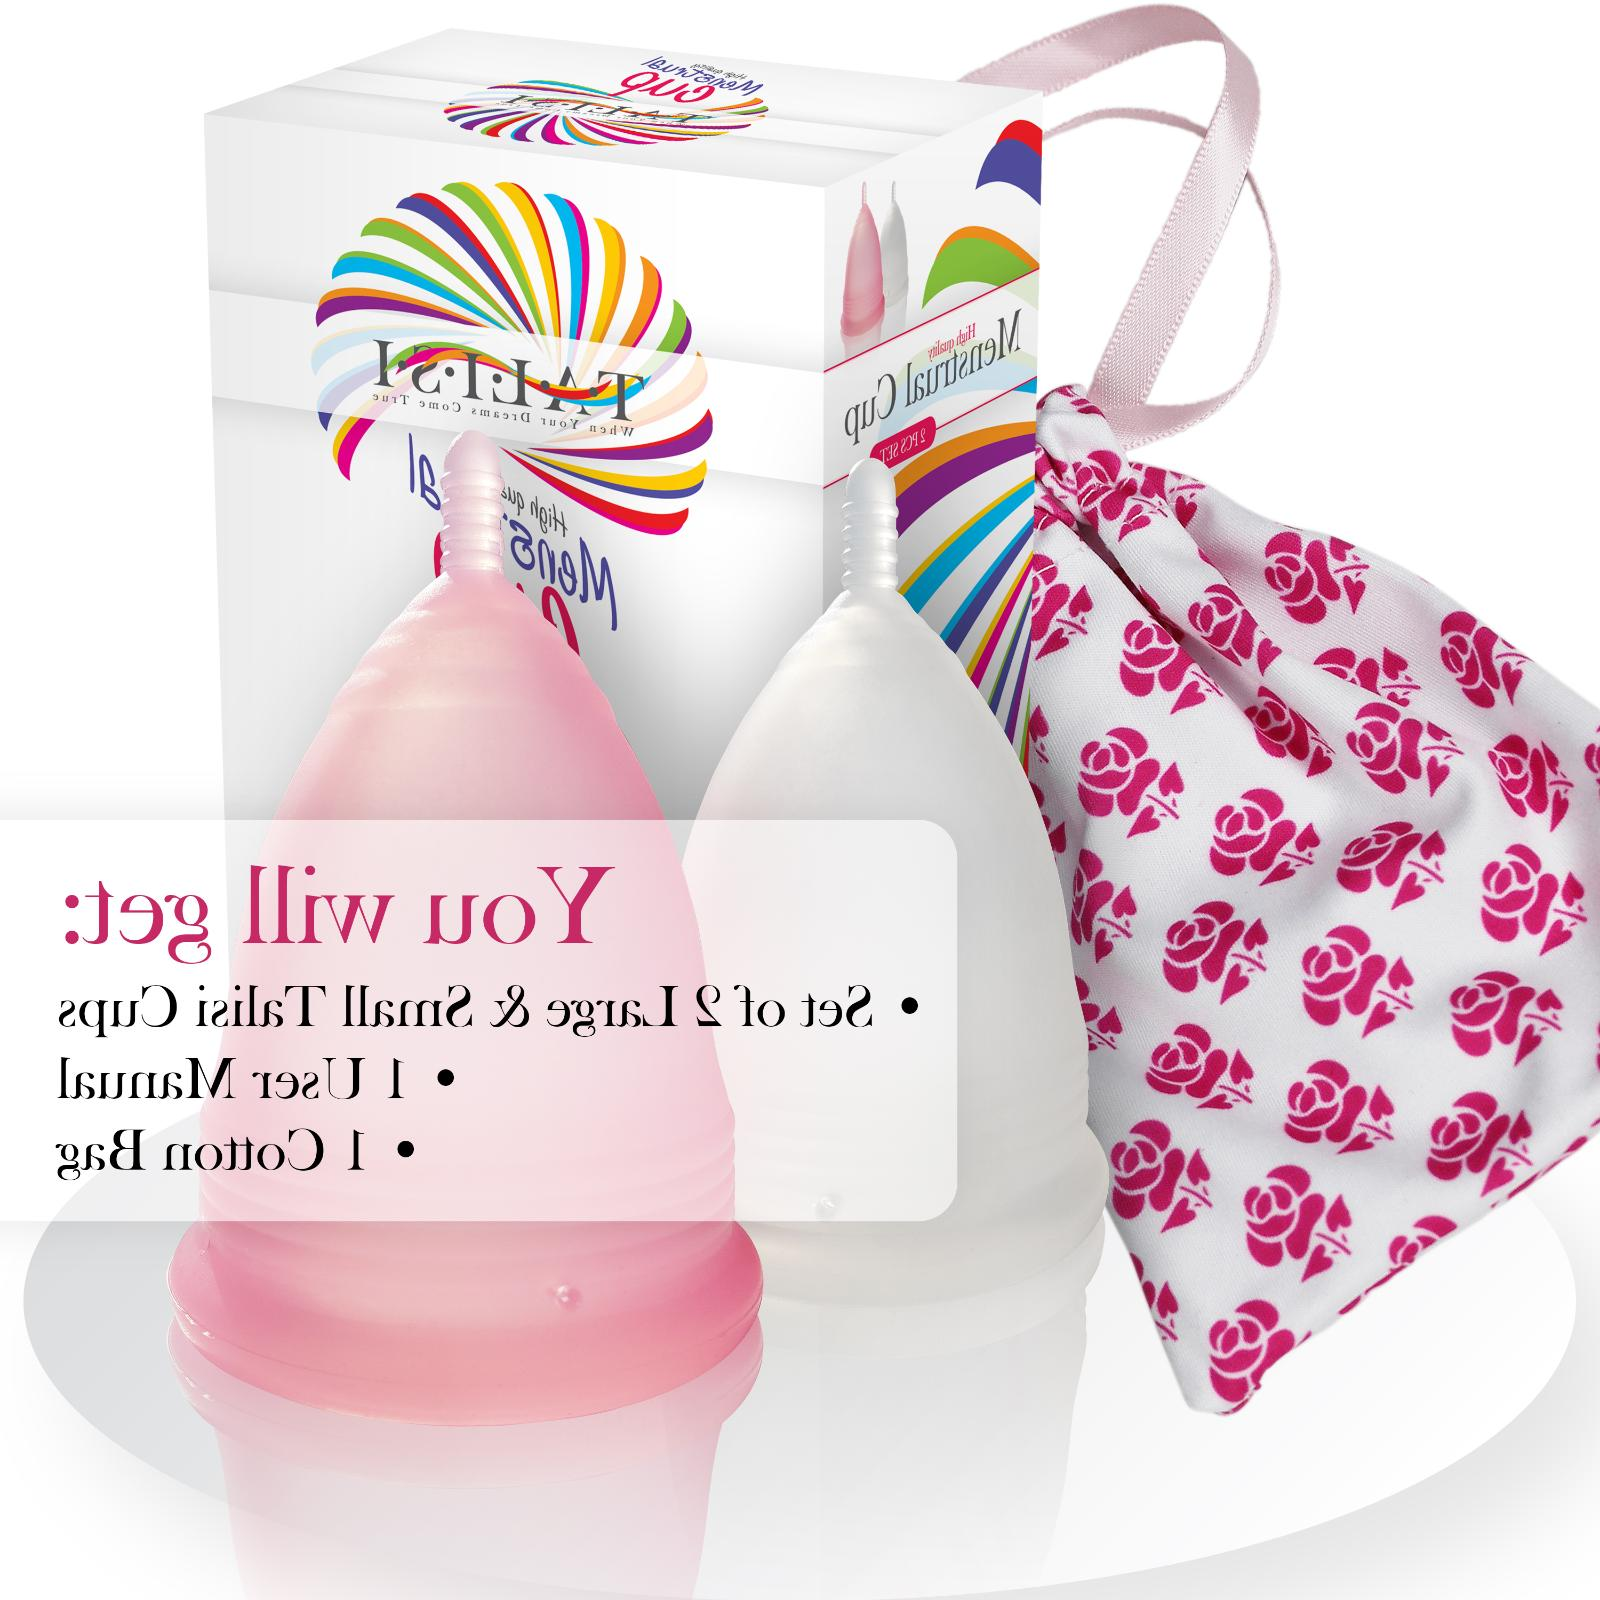 Talisi Reusable Set 2 Large and Small Cup